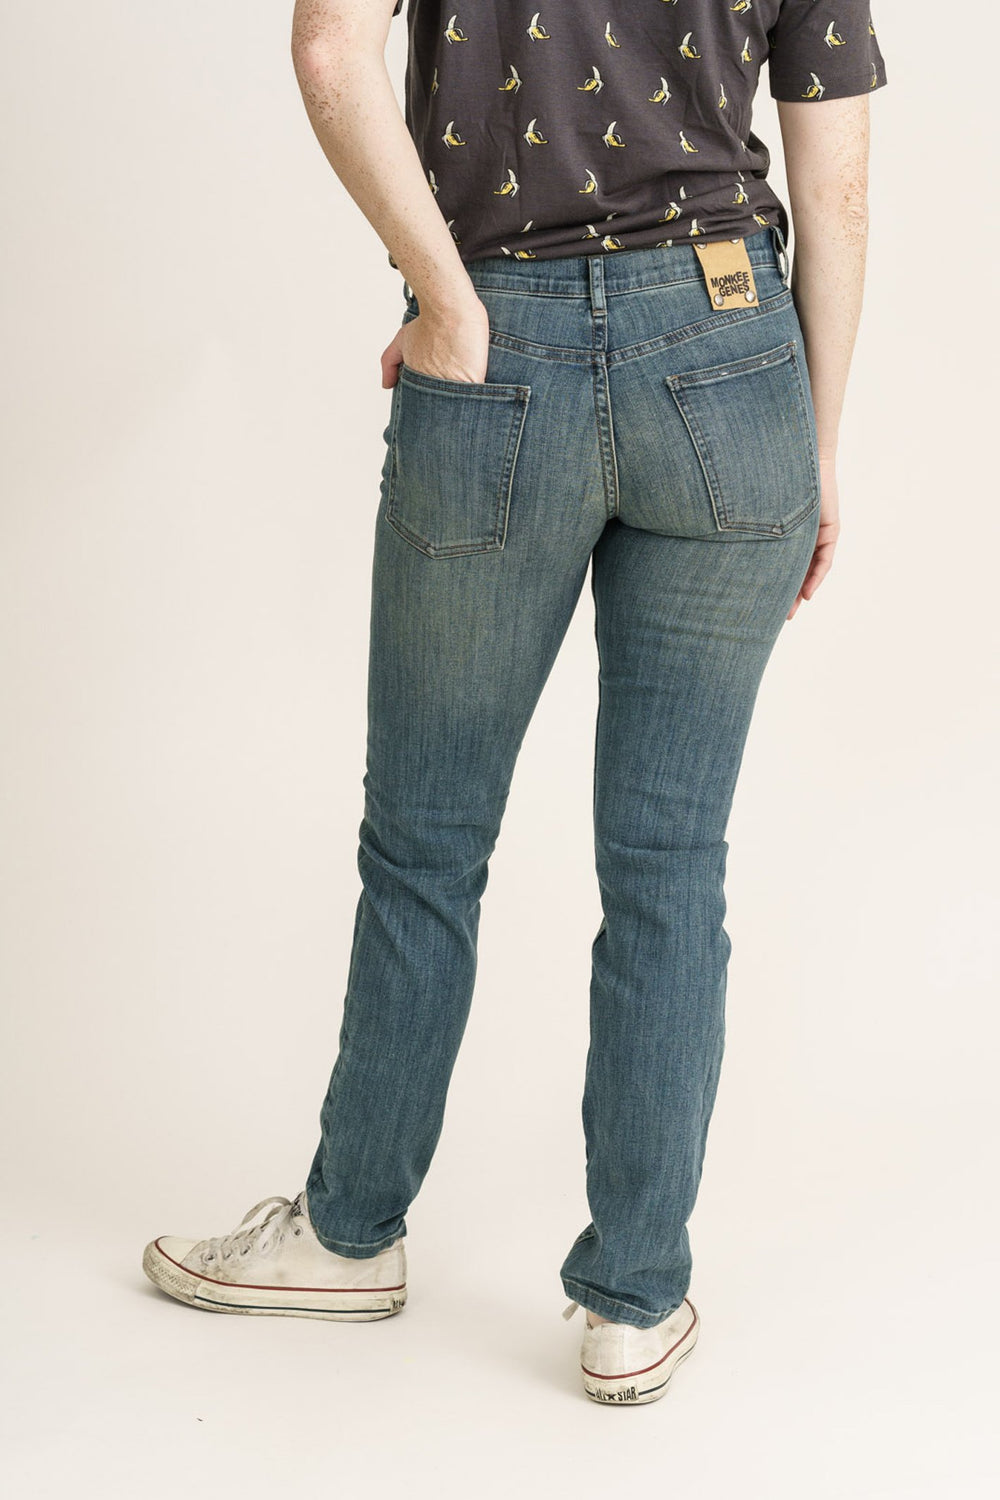 CLASSIC SKINNY // Organic Classic Skinny Jeans in Beat Wash - Monkee Genes Organic Jeans Denim - Women's Classic Skinny Monkee Genes Official  Monkee Genes Official